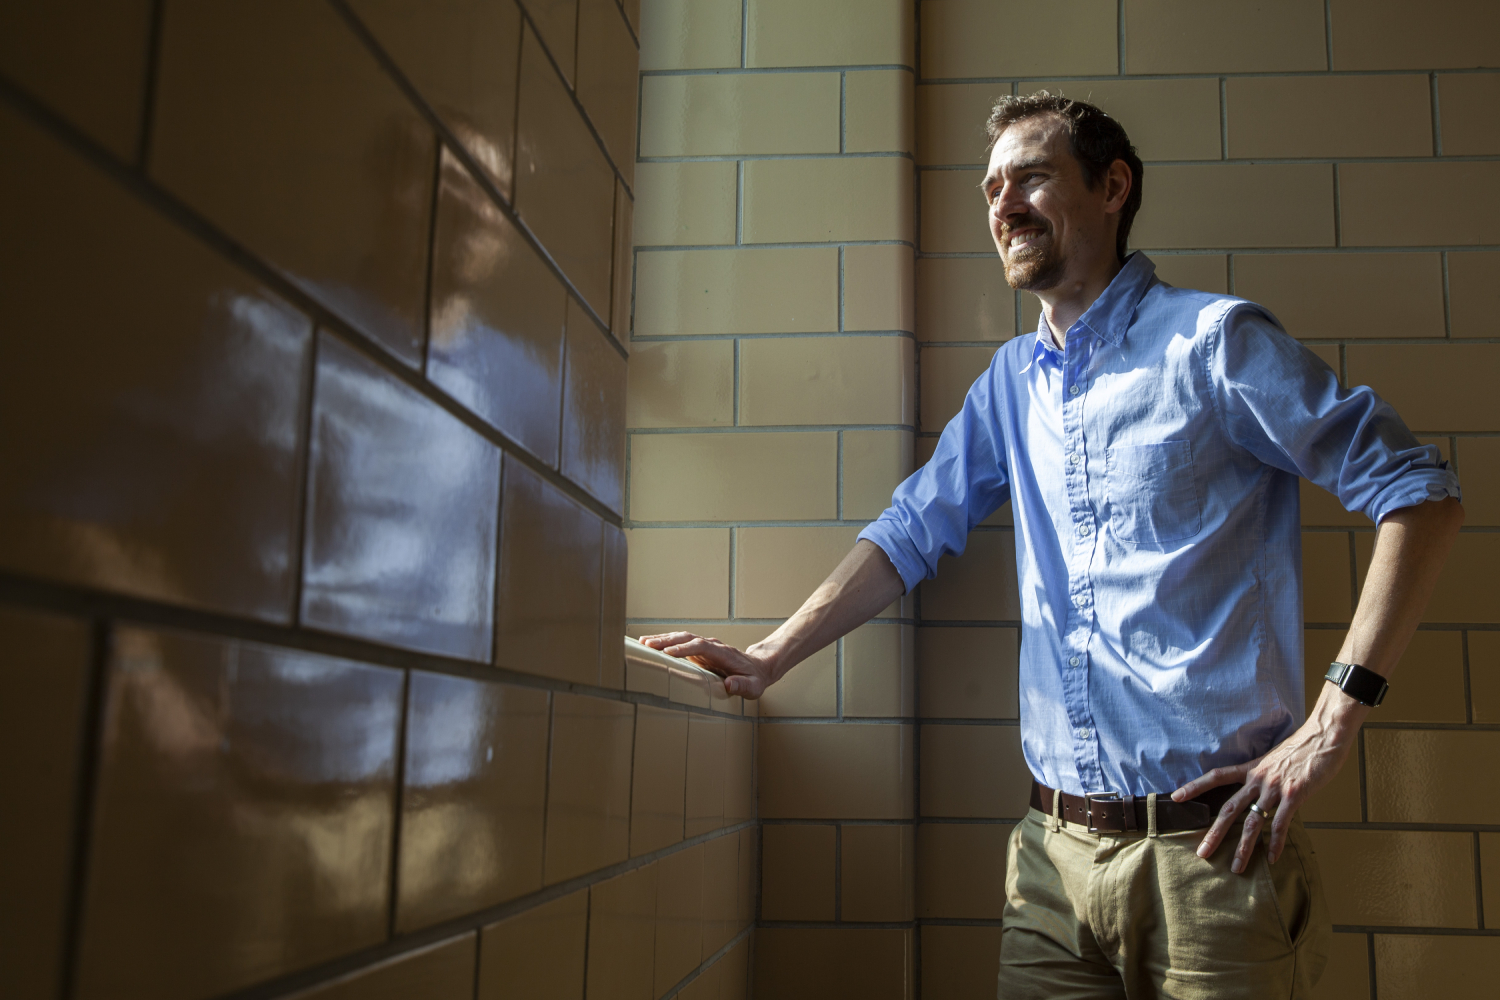 Erik Potter stands near a window in the MU Arts and Science building